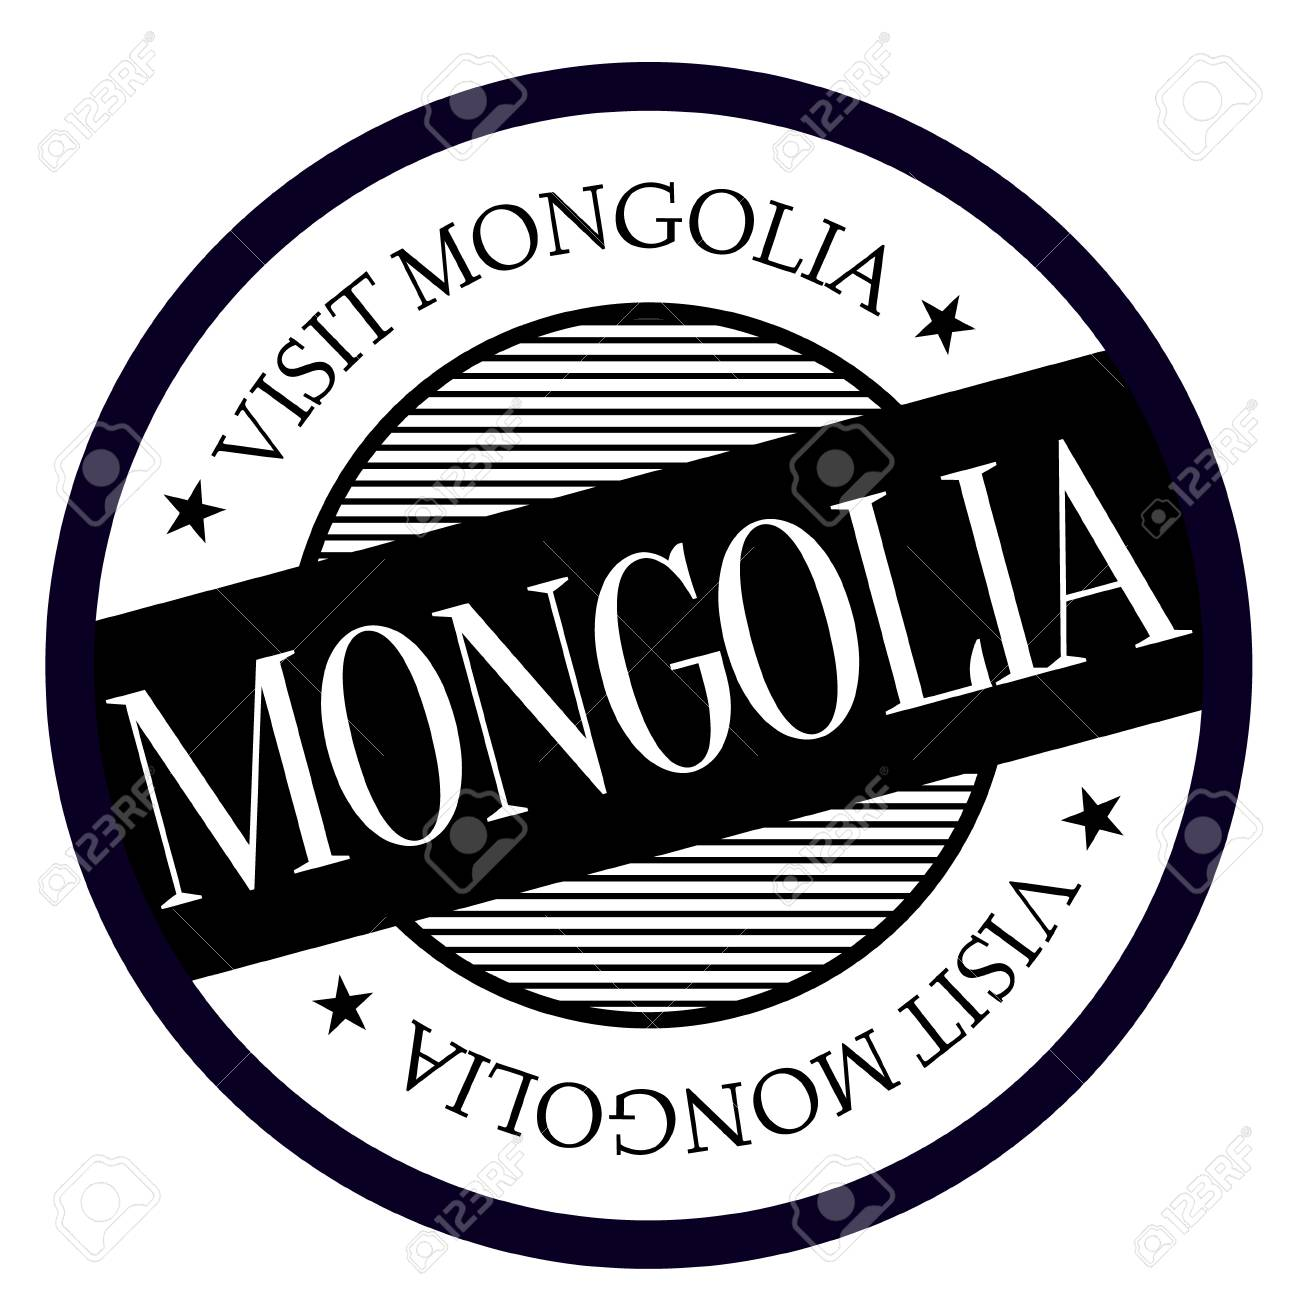 mongolia geographic st city or country label sign royalty free Mongolia Countryside mongolia geographic st city or country label sign stock vector 99499436